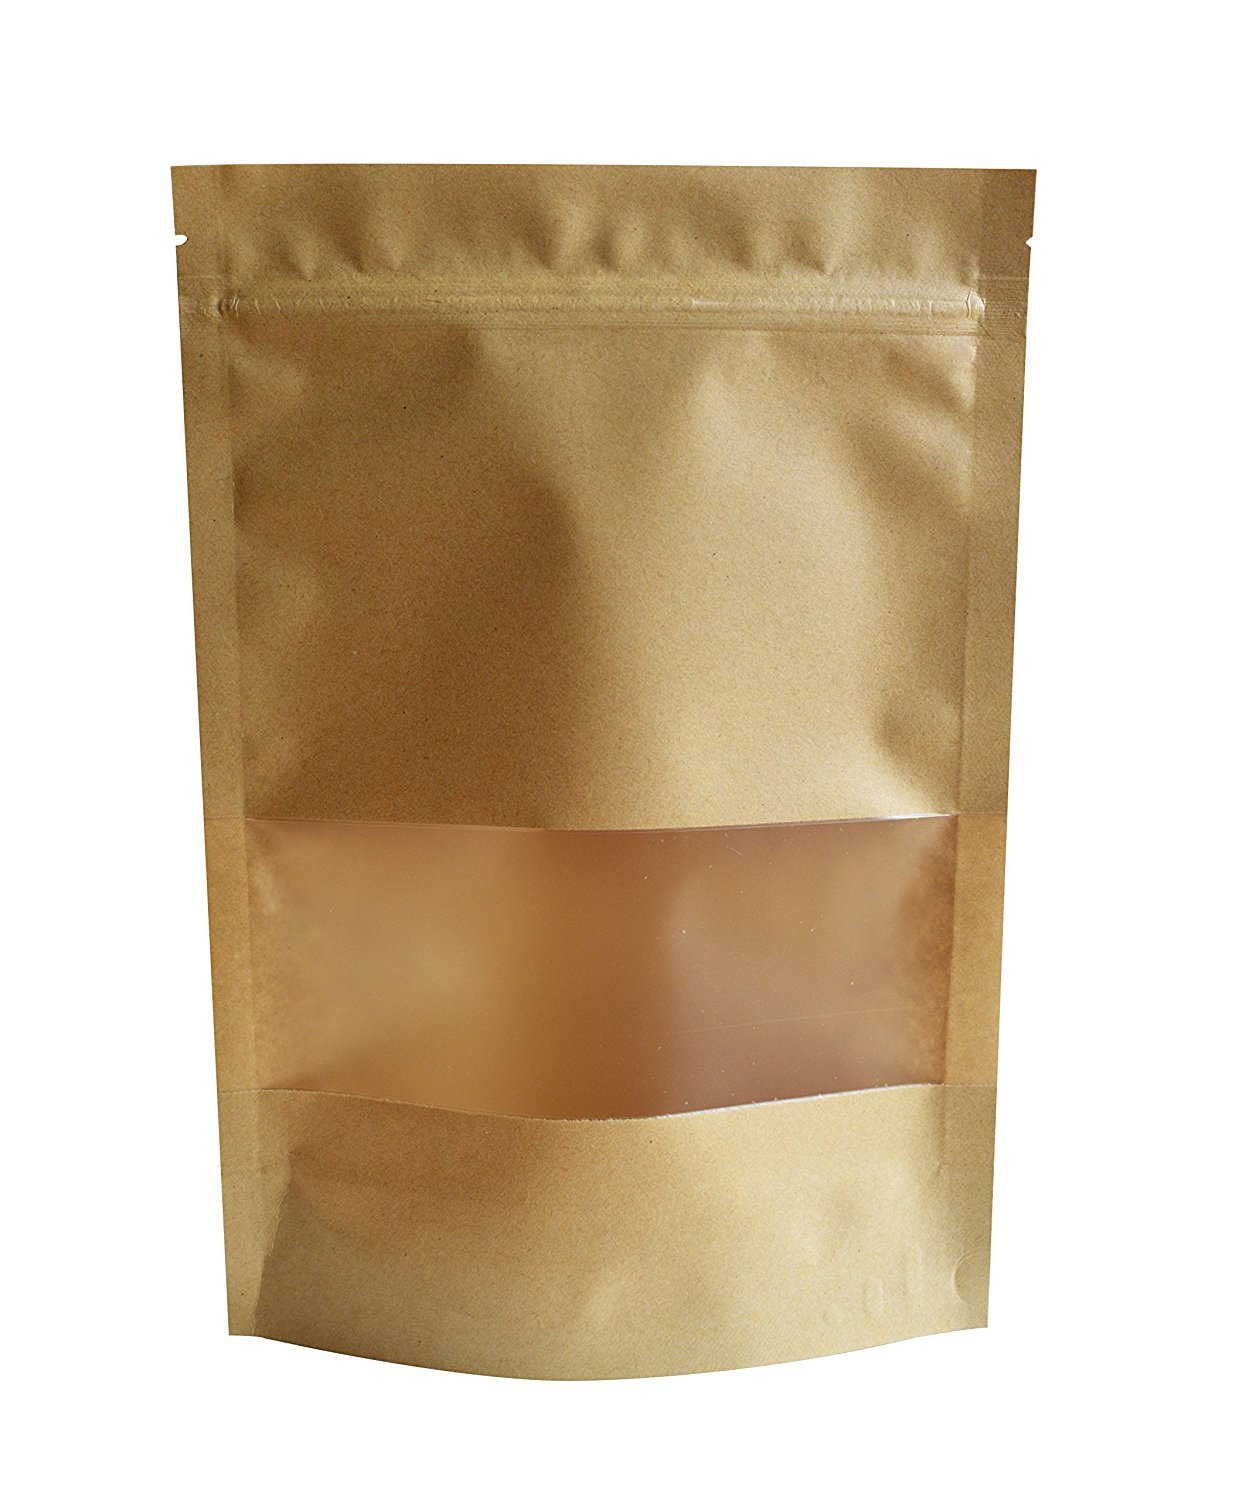 51groups Kraft Paper Bag with Transparent Window(50-Pack) Dry Food Snack Storage   Home, DIY, Commercial Use   Store Coffee, Tea Leaves, Nut, Candy   Food-Grade Safe (5.5''X8.5'')